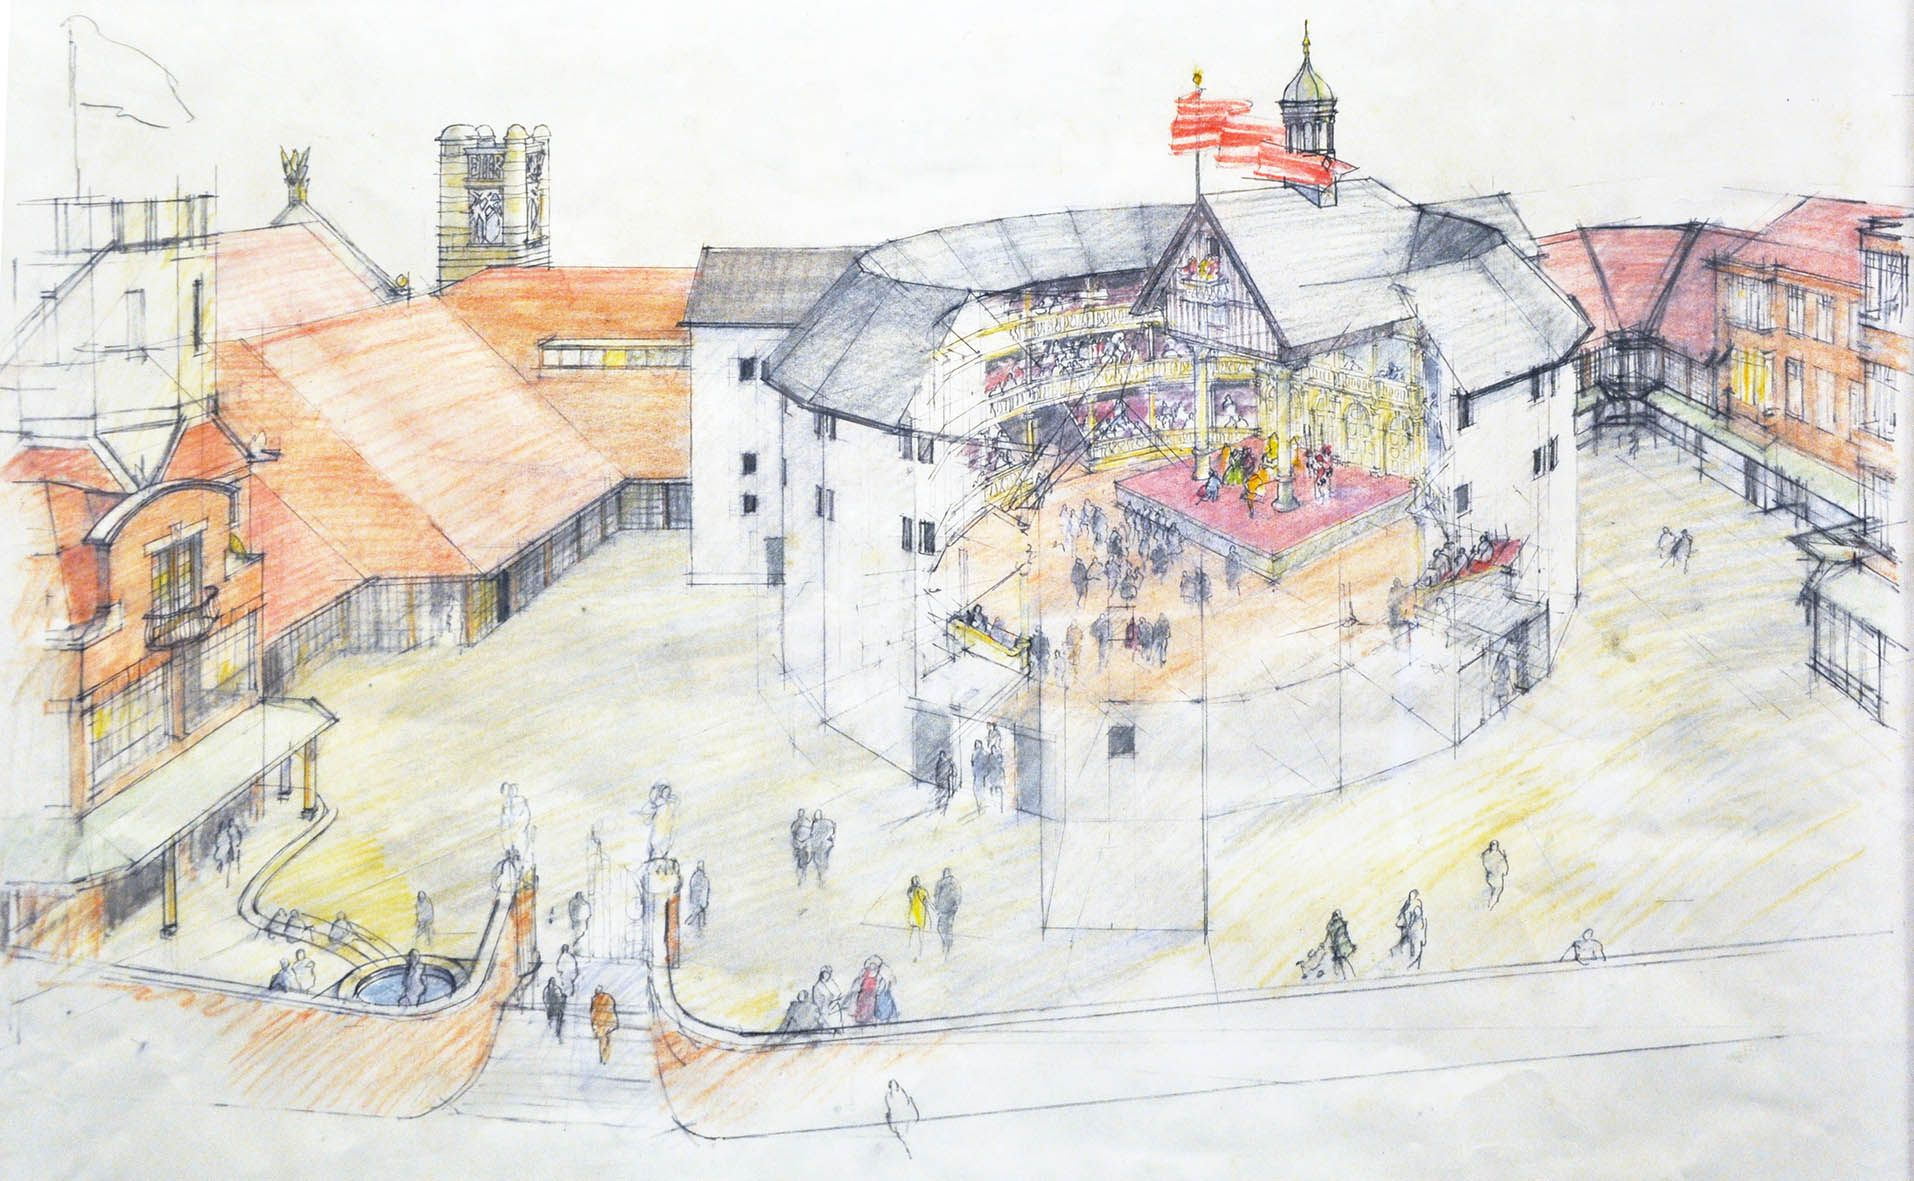 Cutaway Drawing Of The Globe Theatre By Dennis Bailey For